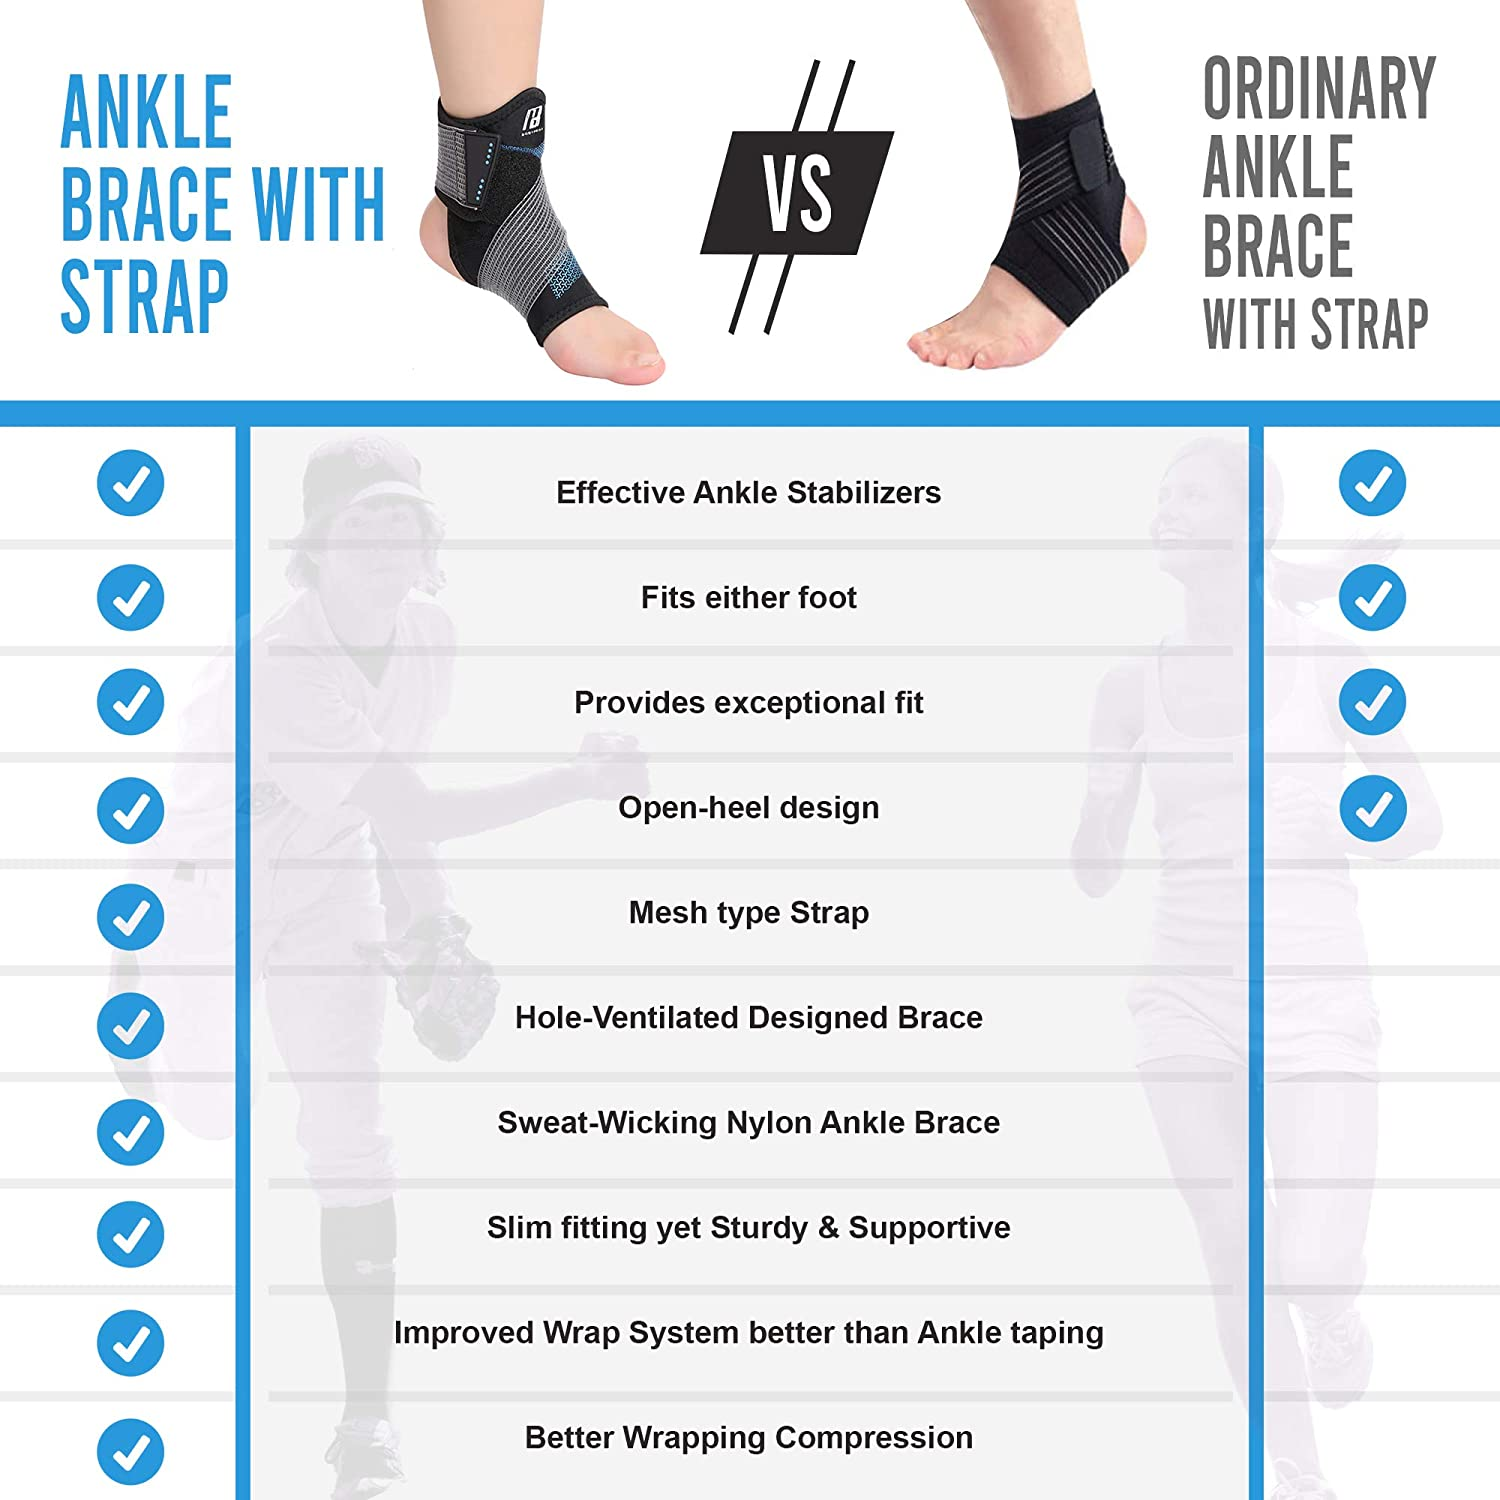 Medium Ankle Brace for Women and Man Injury Recovery and More! Ankle Support with Adjustable Compression Strap for Sprained Ankle